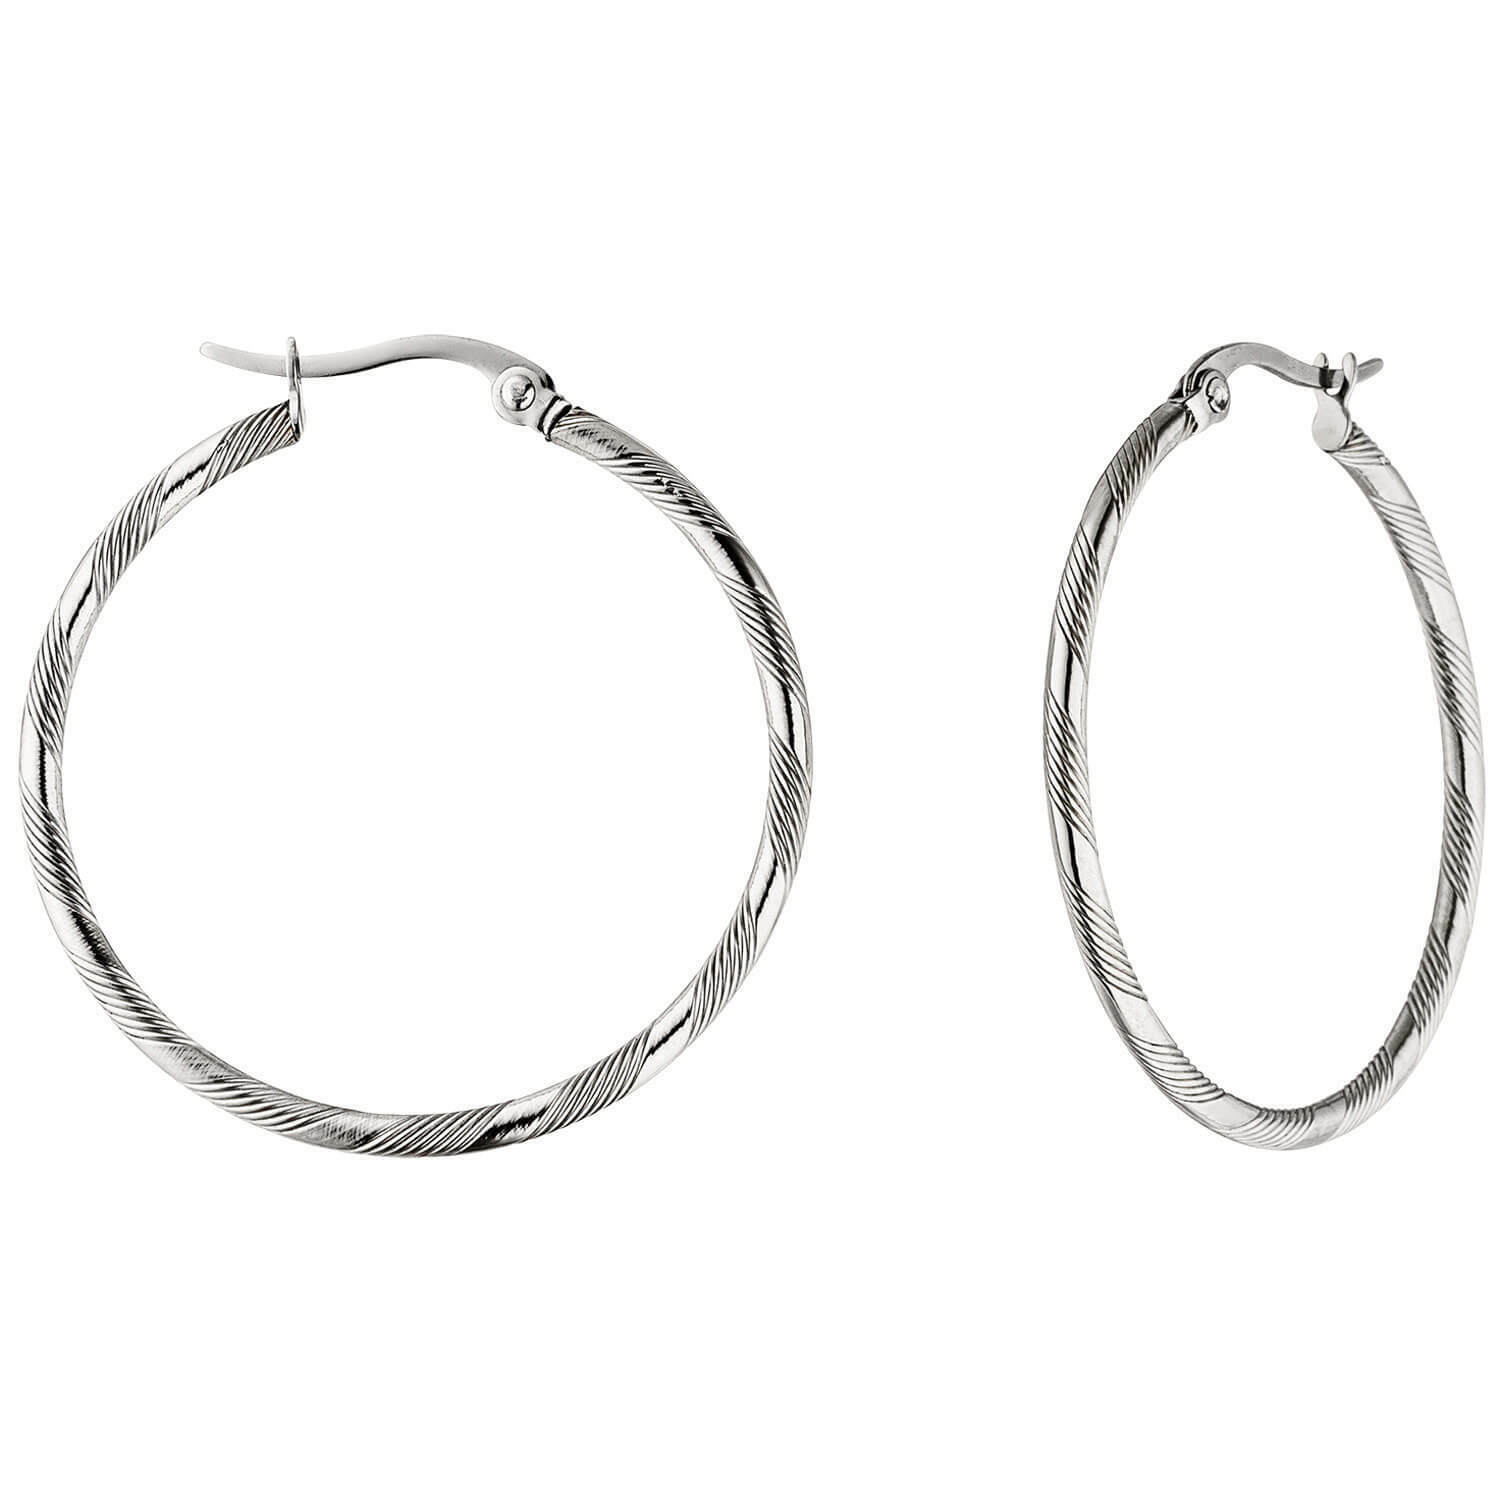 special offer Pair Hoop Earrings 35,1mm with Pattern Made